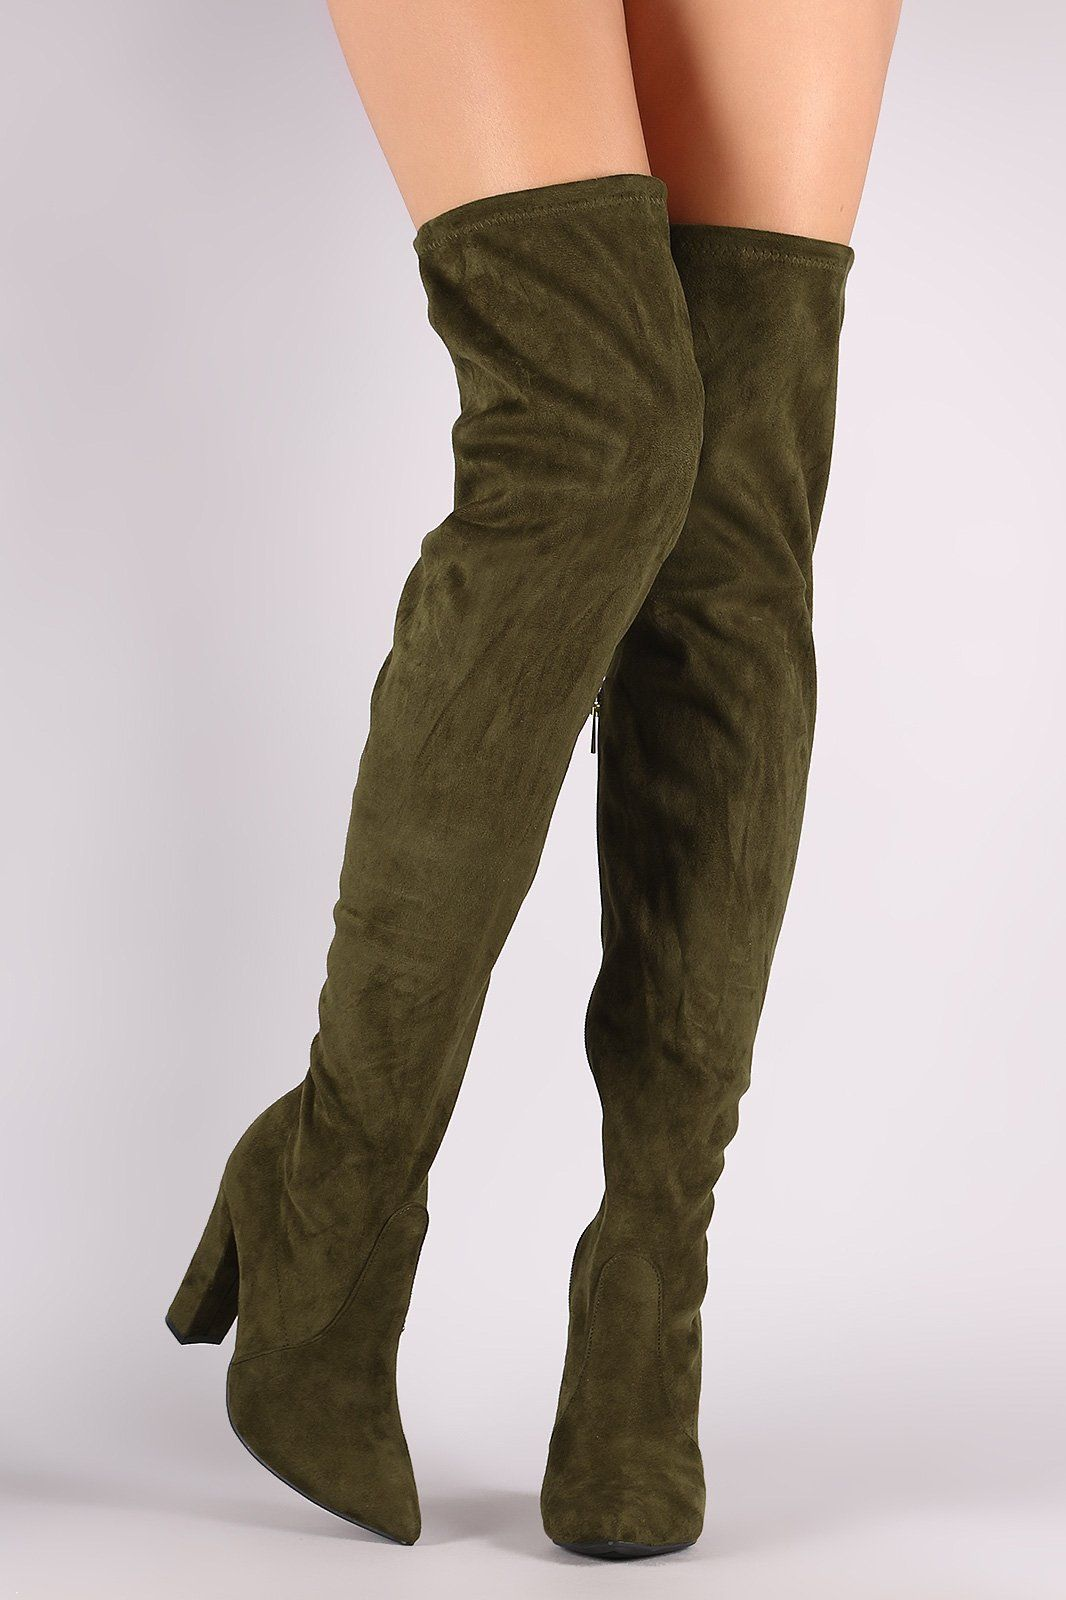 b1e6657a8183 These striking boots feature a slightly stretched vegan suede